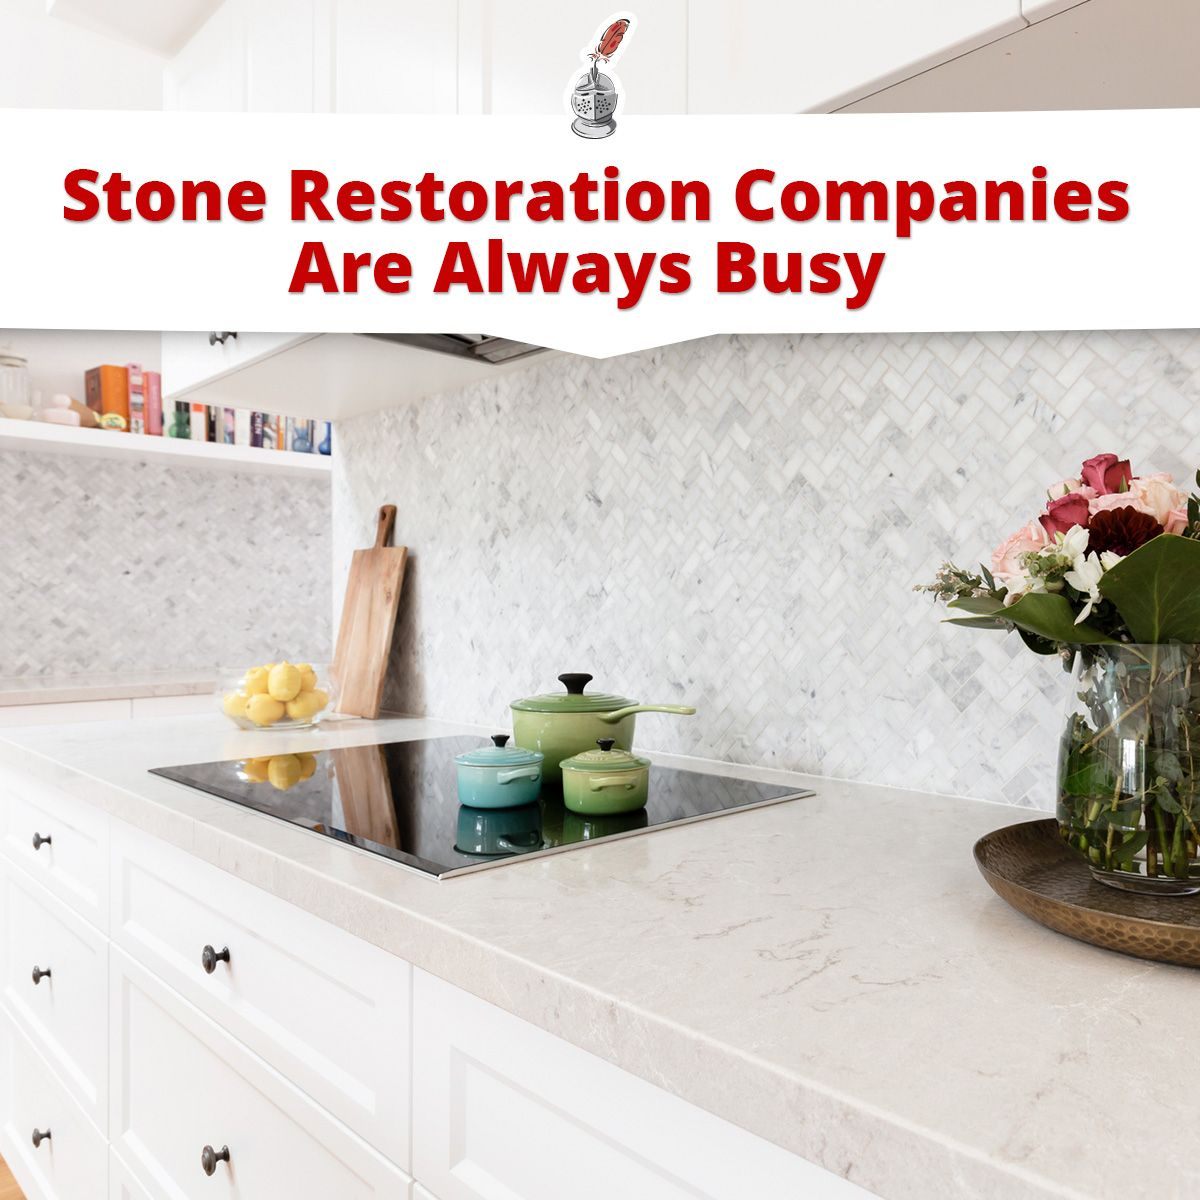 Stone Restoration Companies Are Always Busy